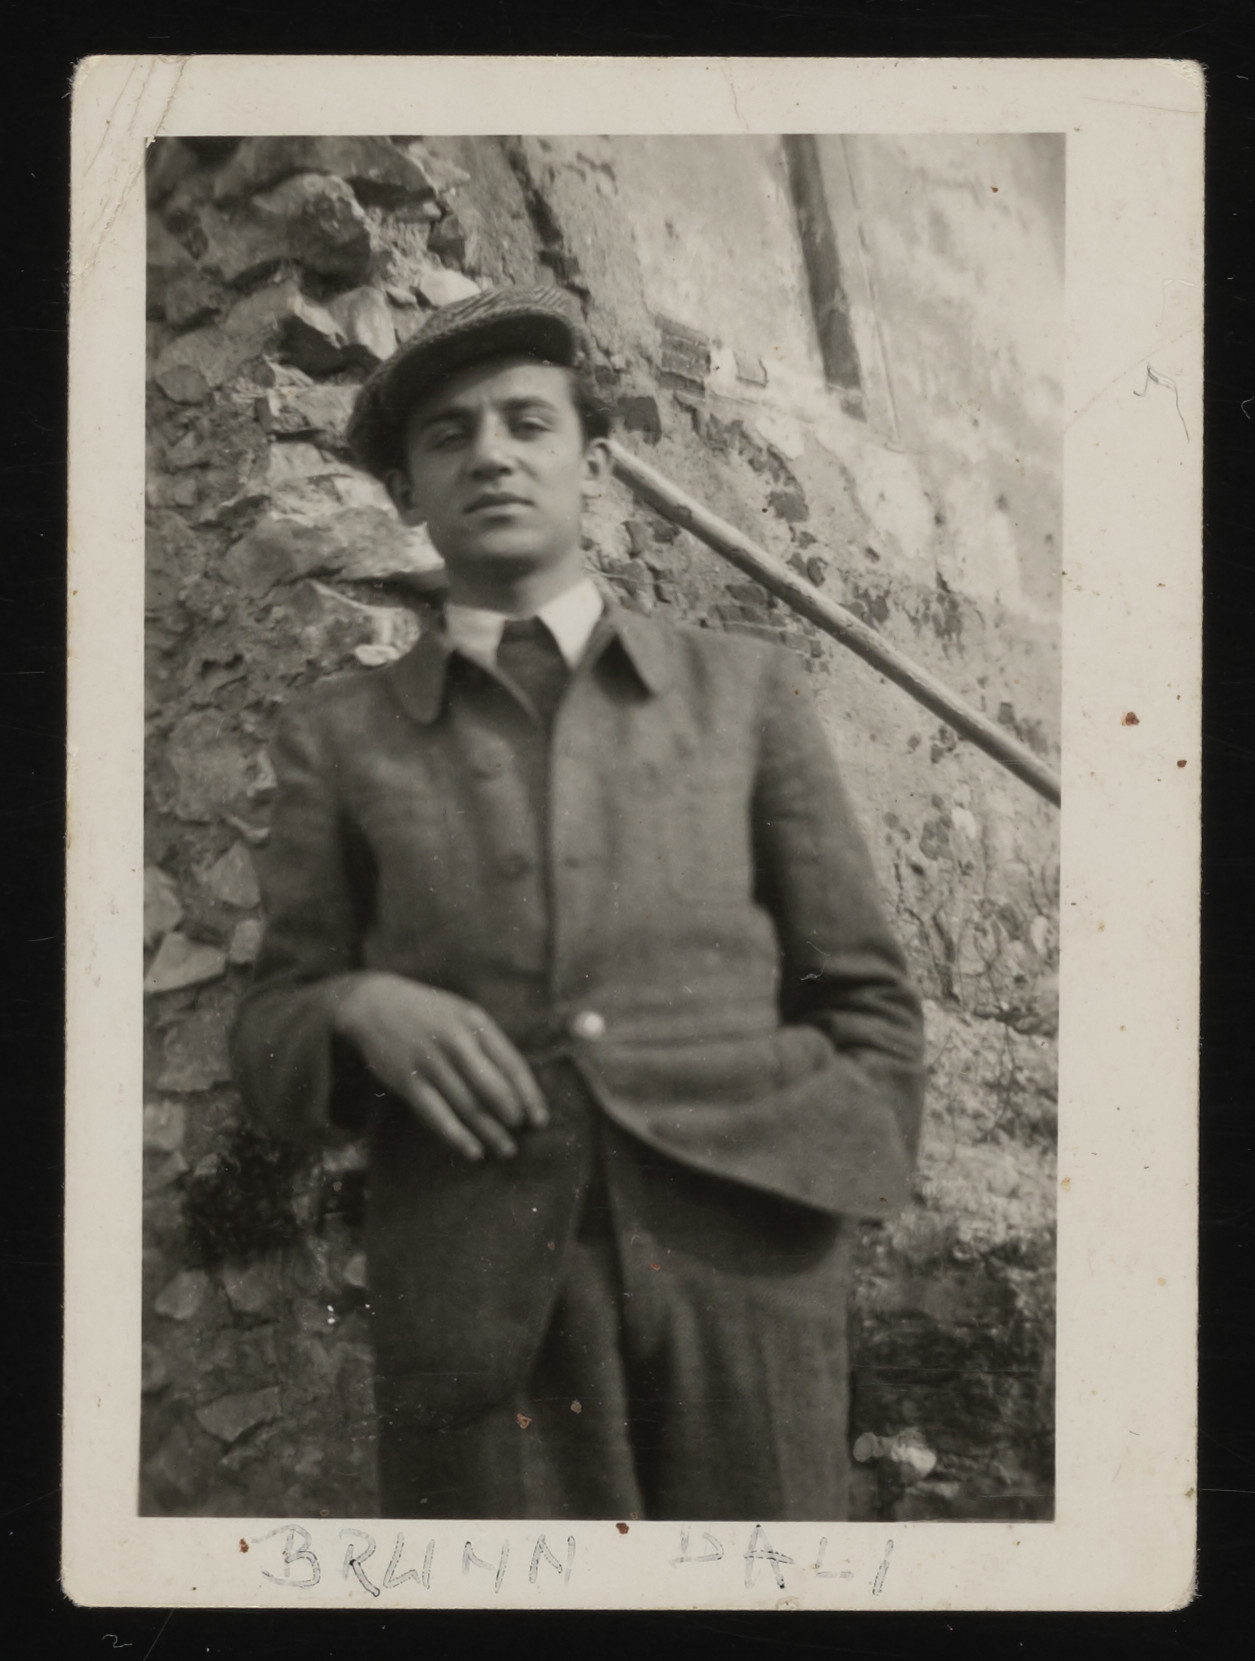 Paul Brunn leans up against a wall; soon afterwards he was conscripted for forced labor and perished in the fall of 1944.